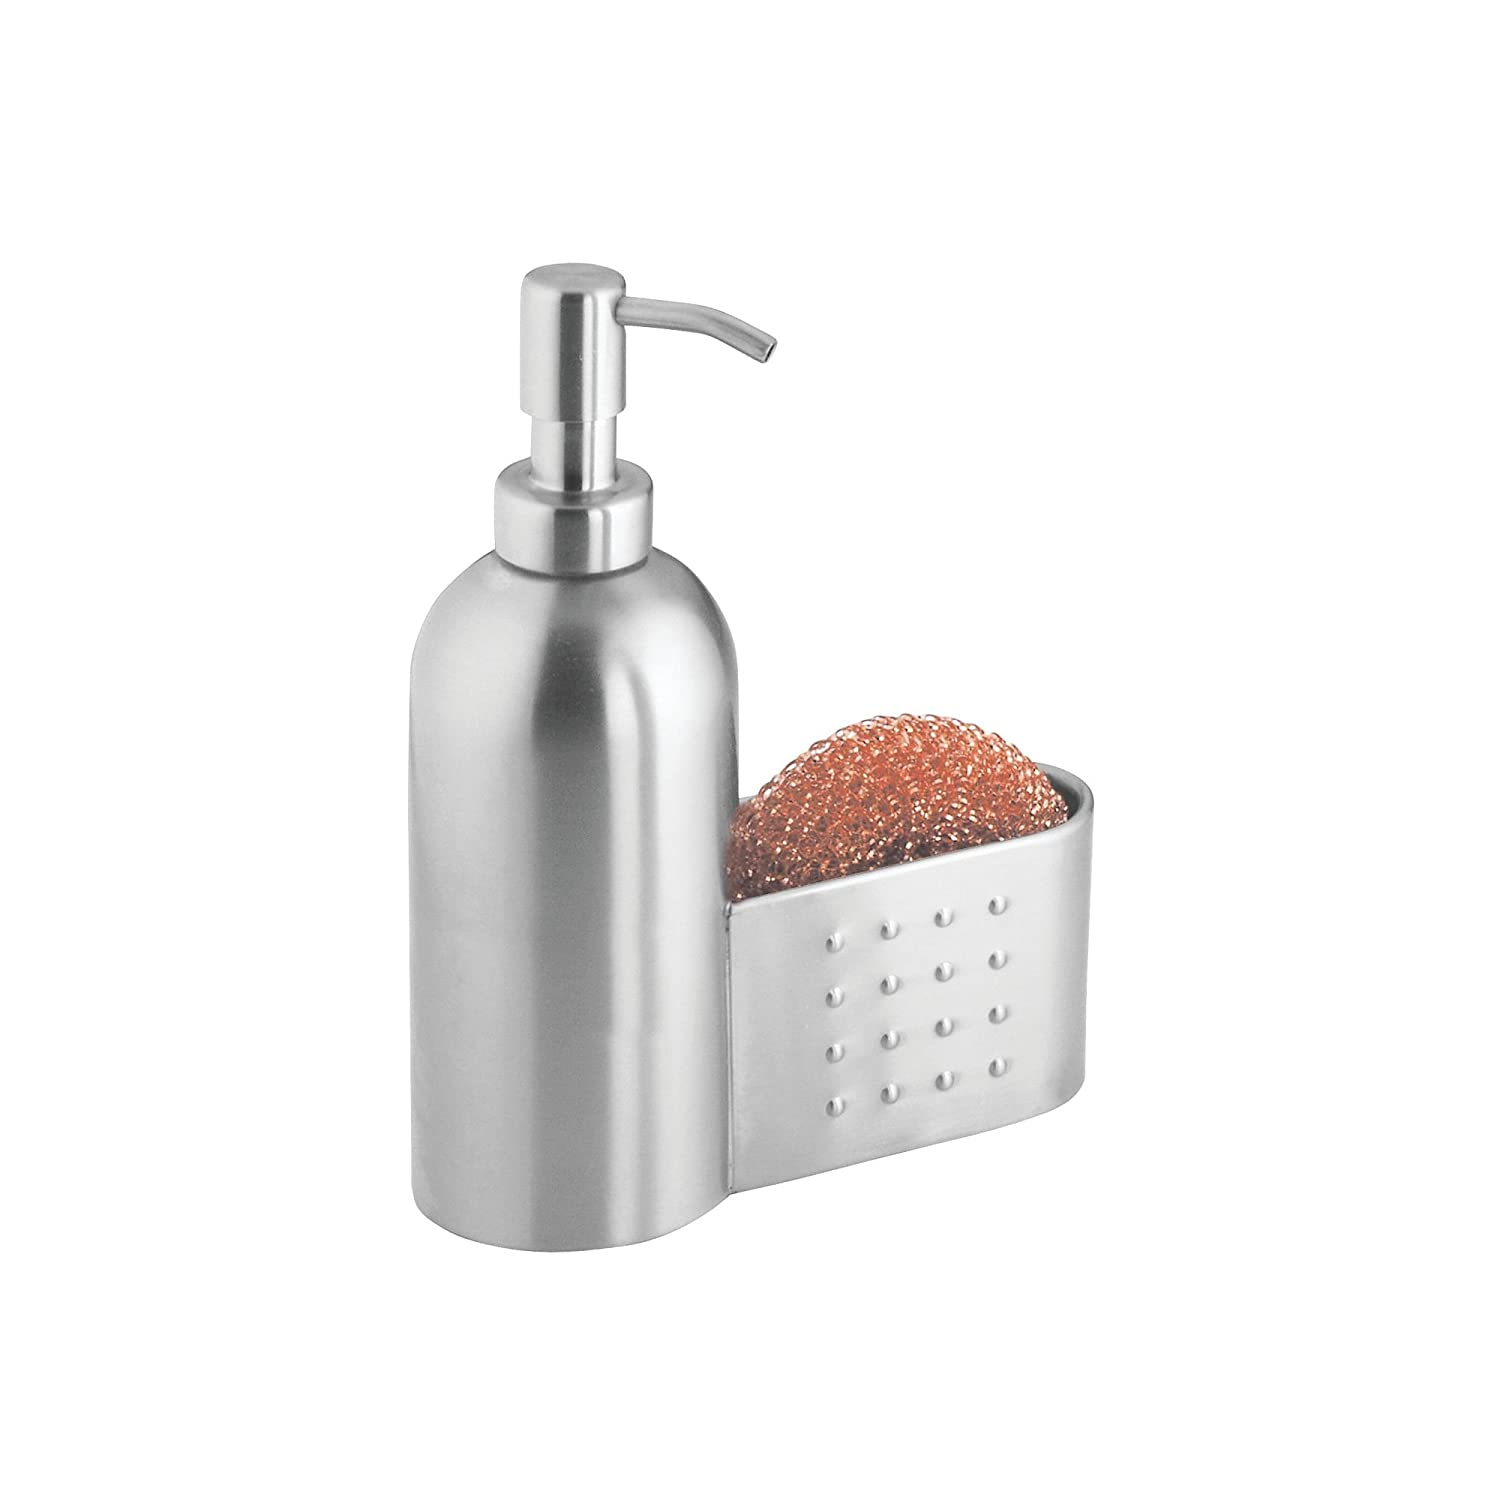 Idesign Forma Kitchen Countertop Stainless Steel Soap Dispenser Pump And Sponge Scrubby Caddy Organizer Brushed